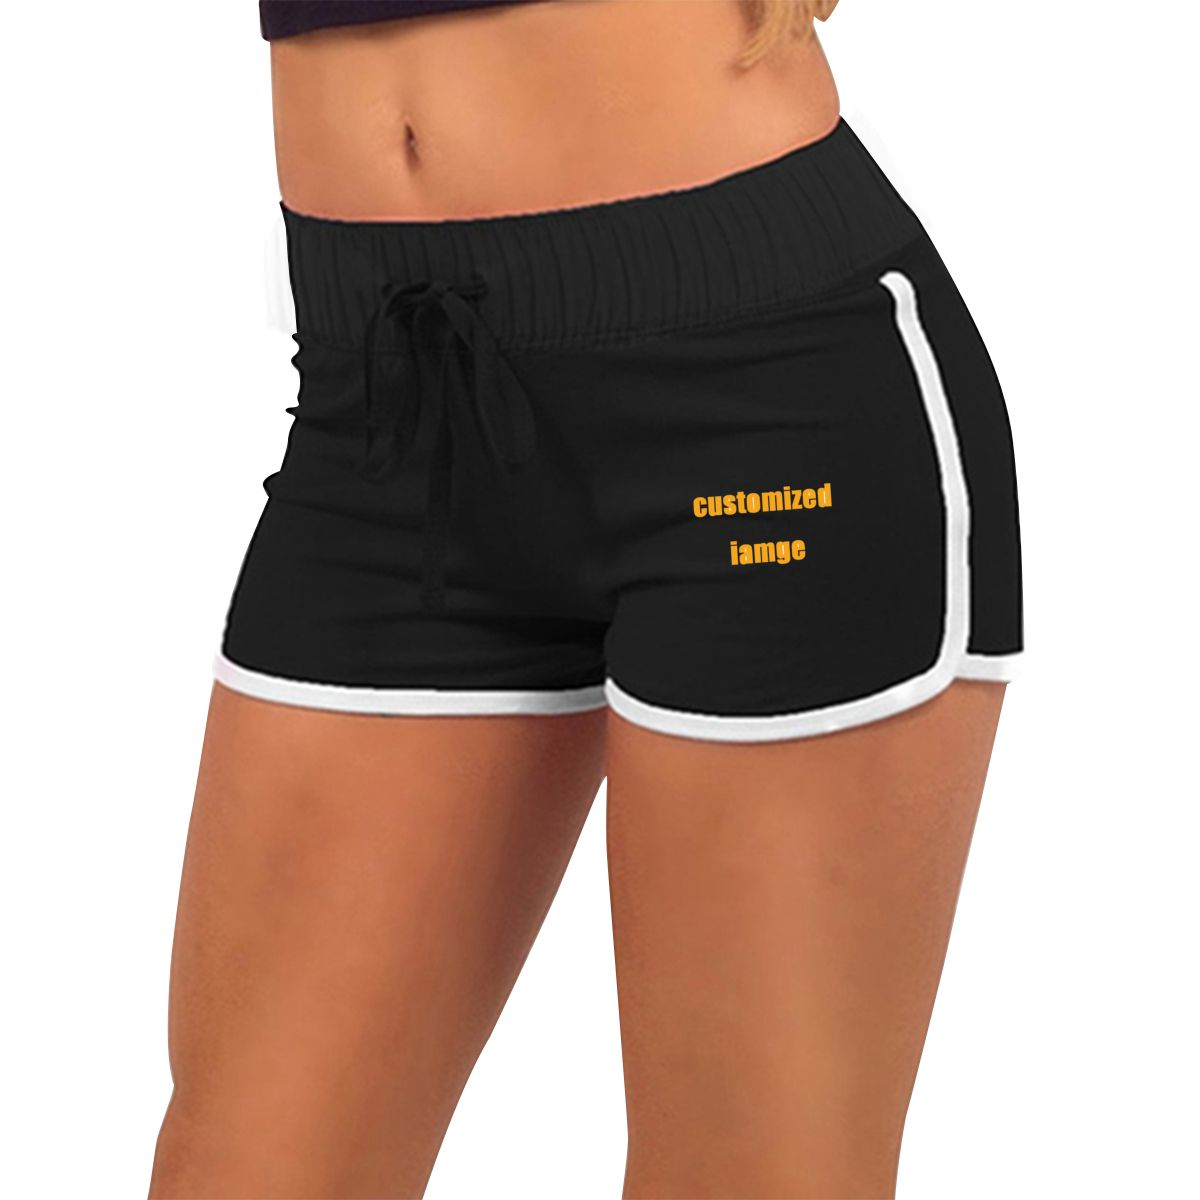 NOISYDESIGNS 3D Printed Custom Women Pants 2020 Summer Personalized Casual Short Pants Sport Gym Pants Customized Logo